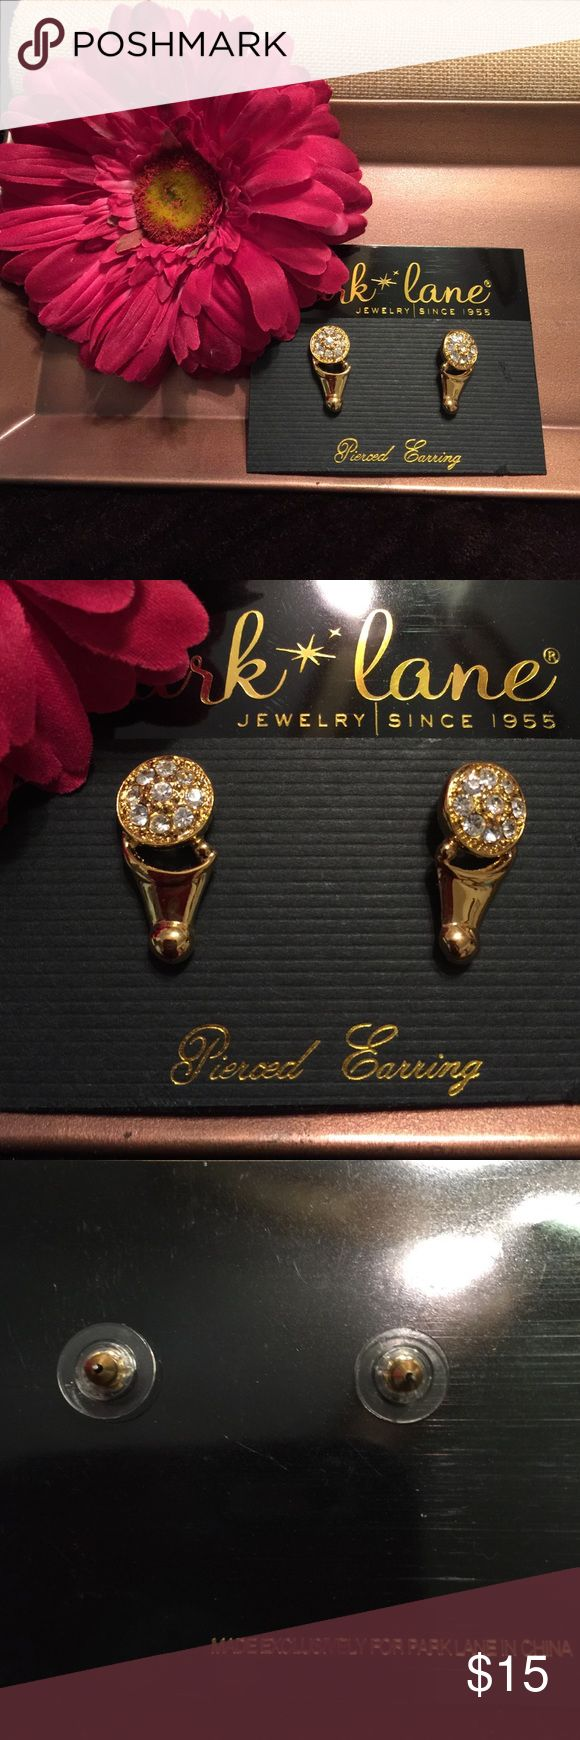 NEW Park Lane Earrings Gold and rhinestone earrings! NEW Park Lane Jewelry Earrings